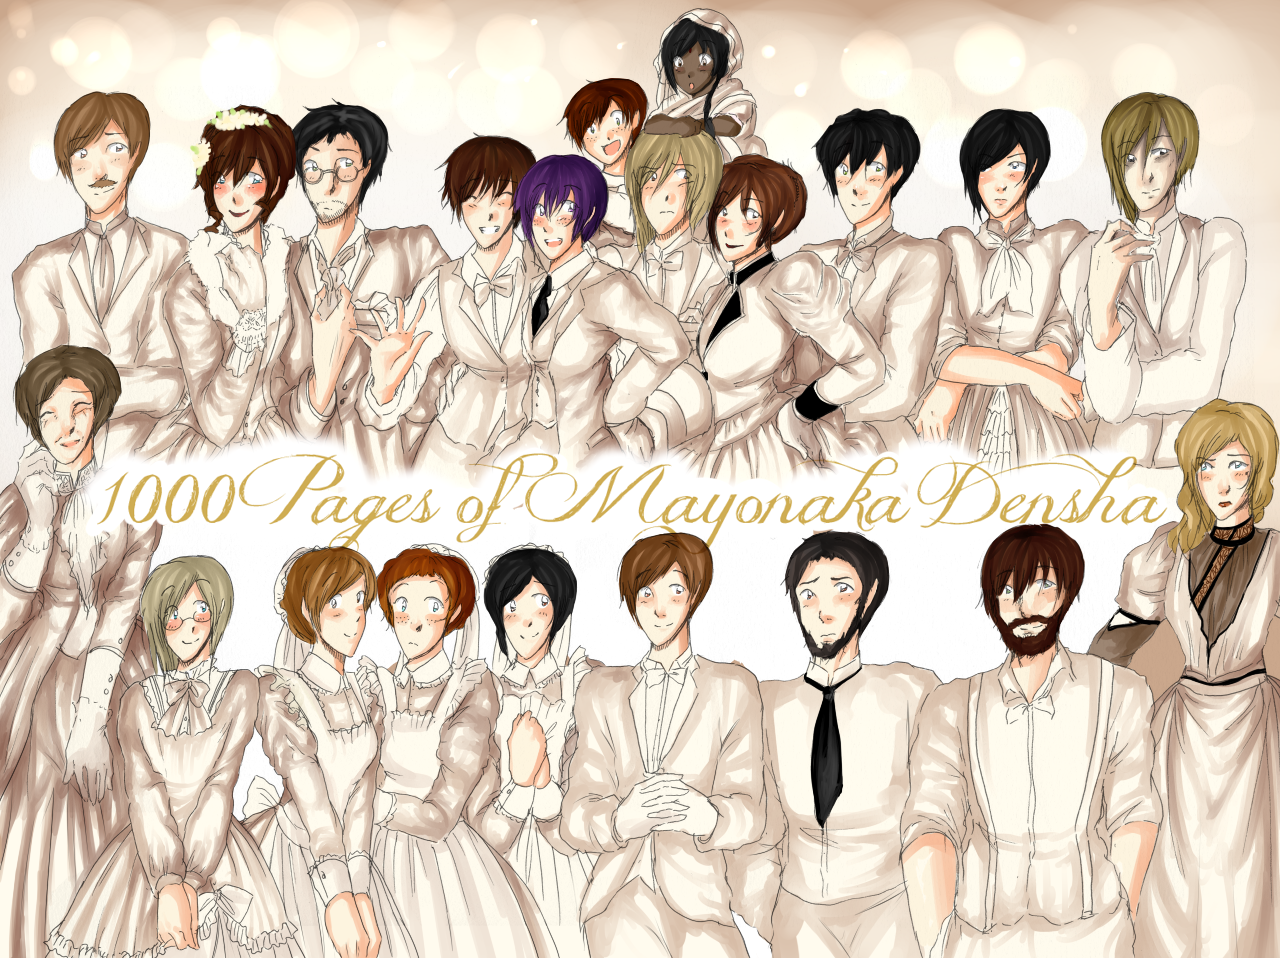 HAPPY 1000 PAGES! 8D